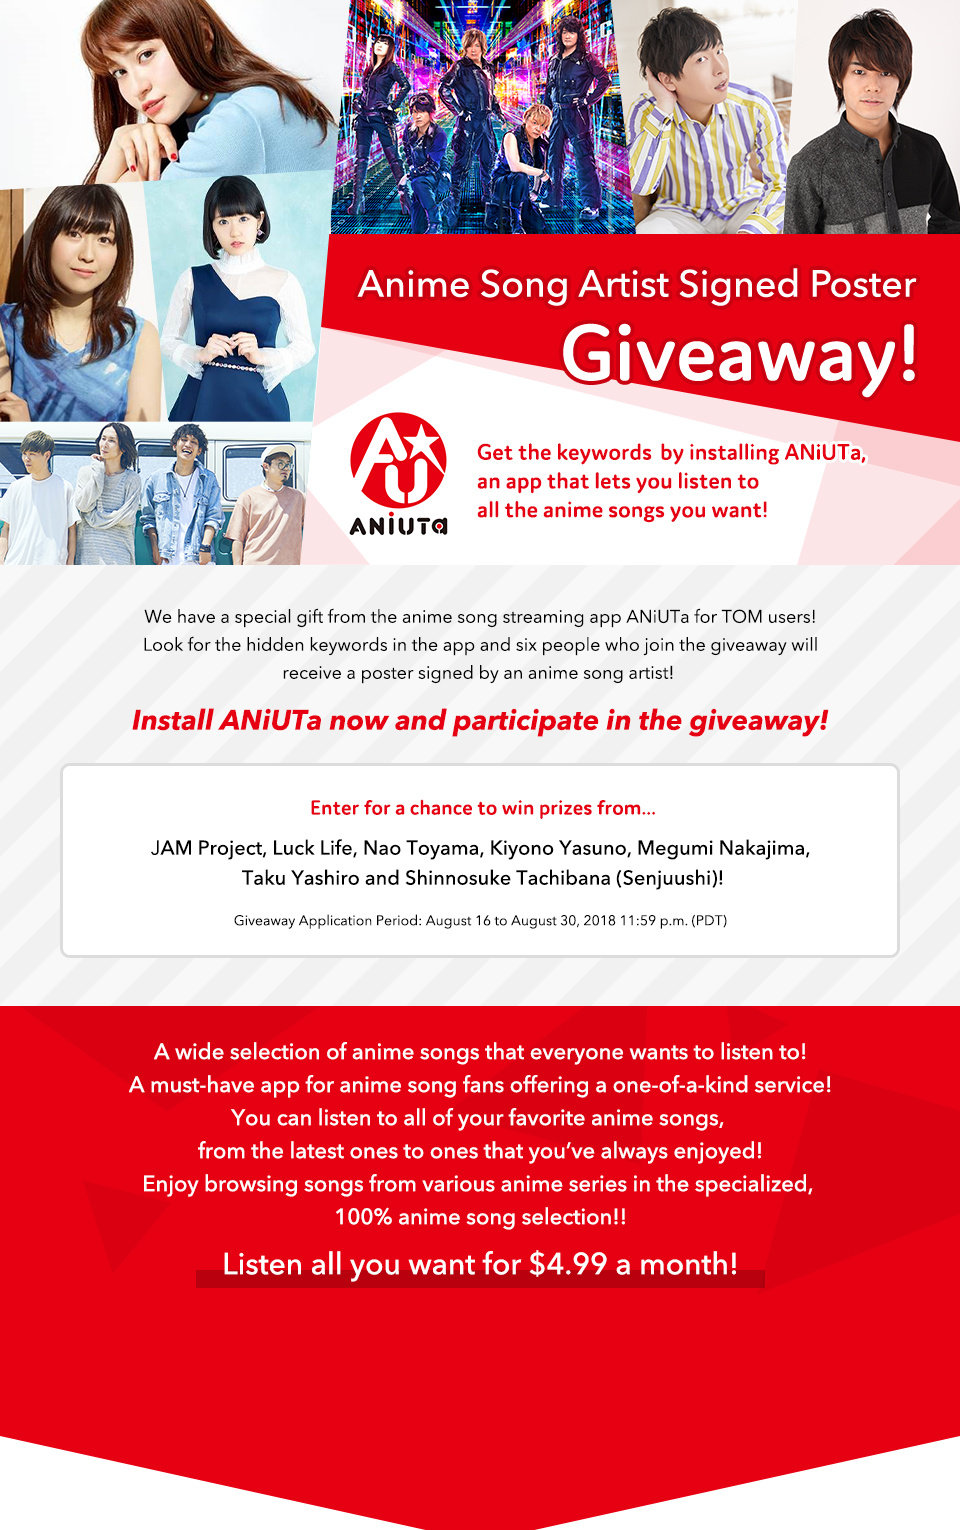 Anime Song Artist Signed Poster Giveaway!